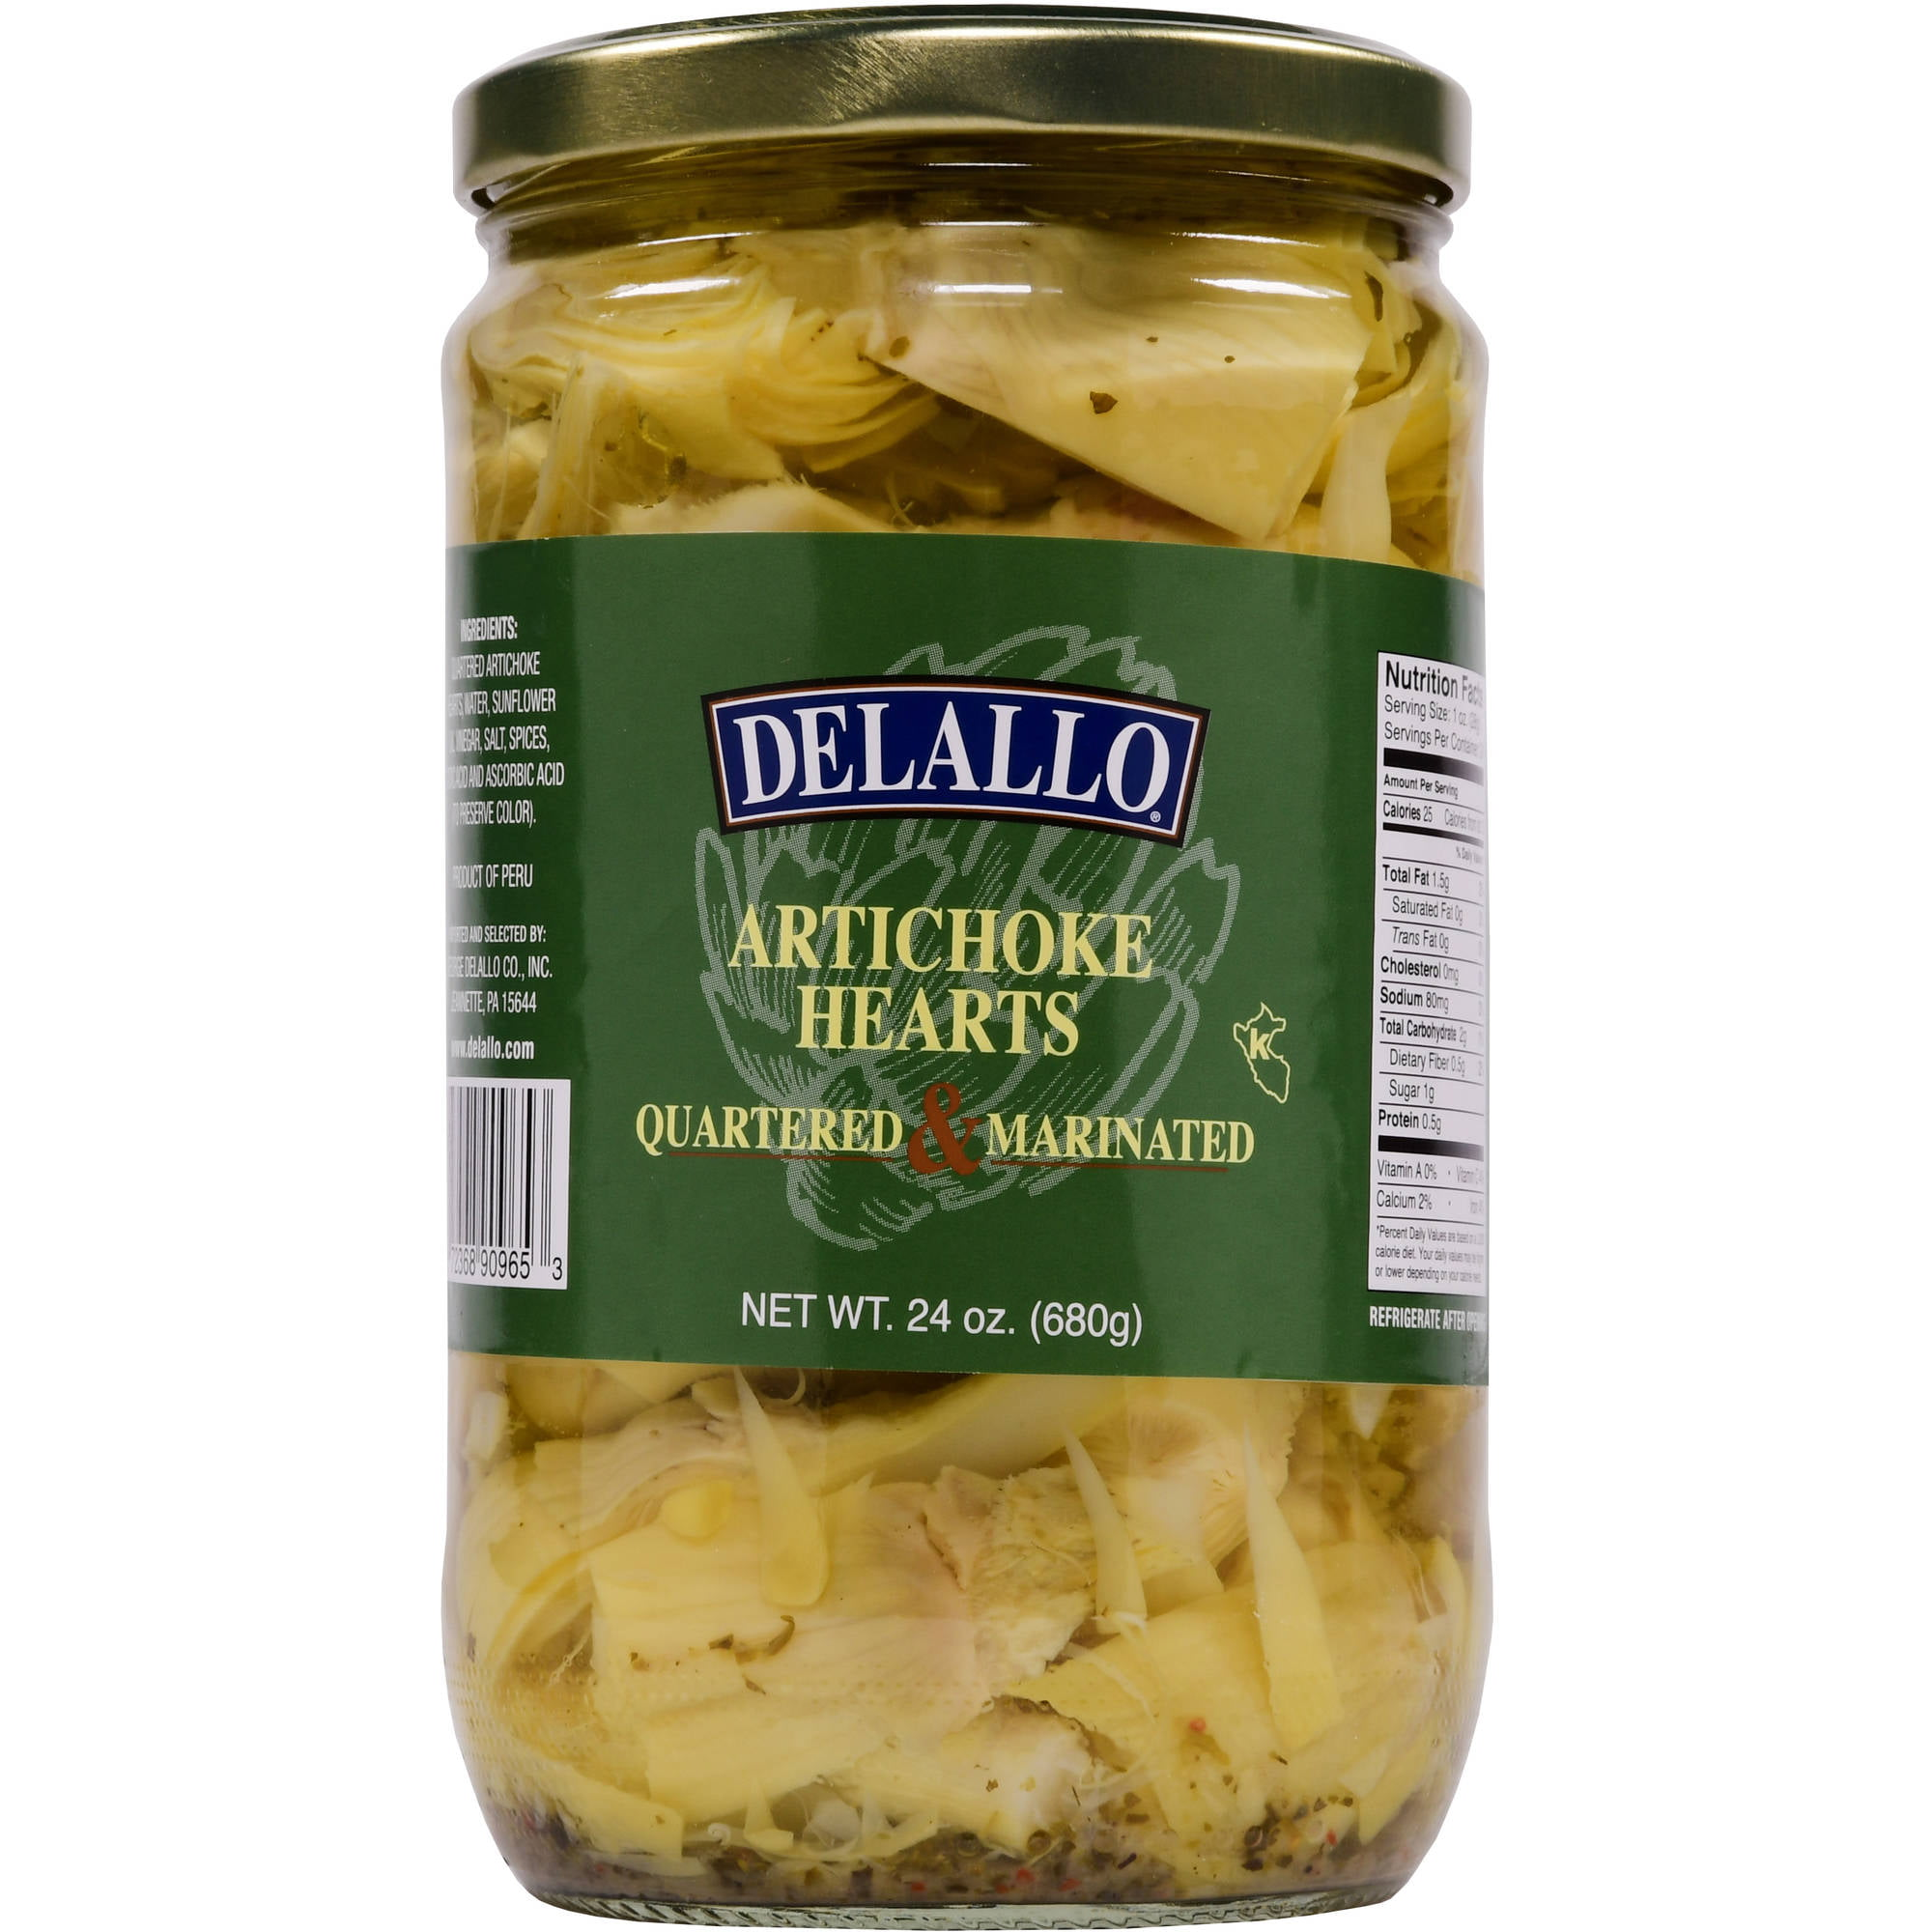 DeLallo Marinated Artichoke Hearts, 24 oz by George Delallo Co, Inc